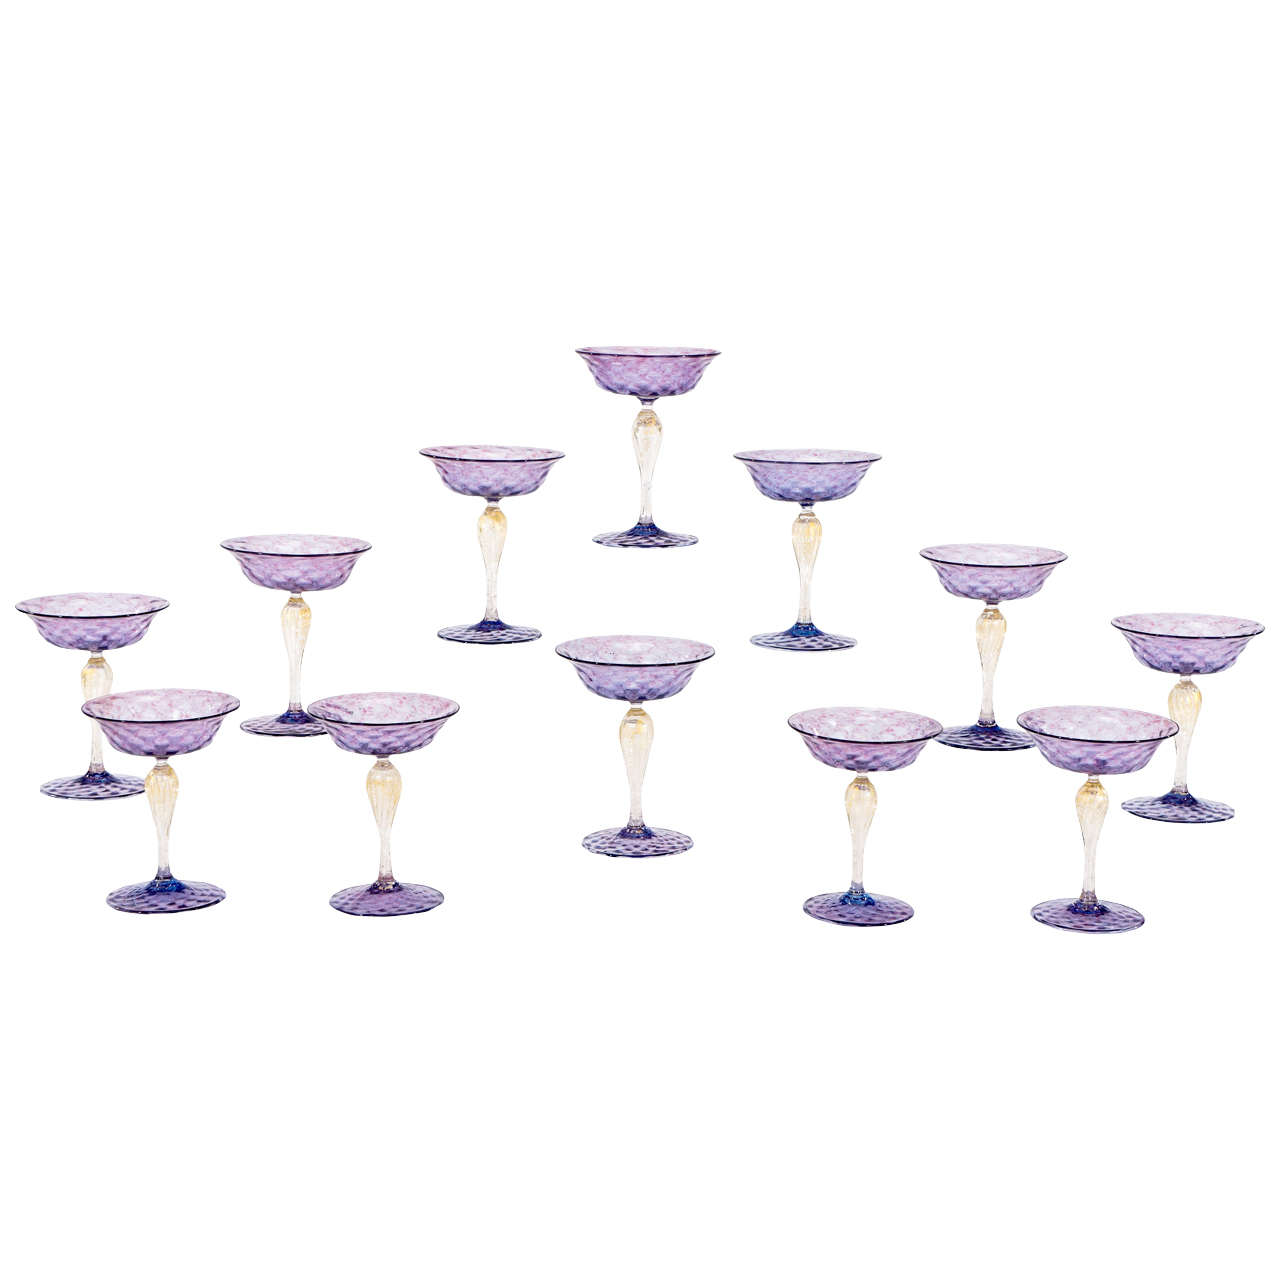 12 Salviati Venetian Amethyst Champagne/Compotes with Gold Leaf Inclusions